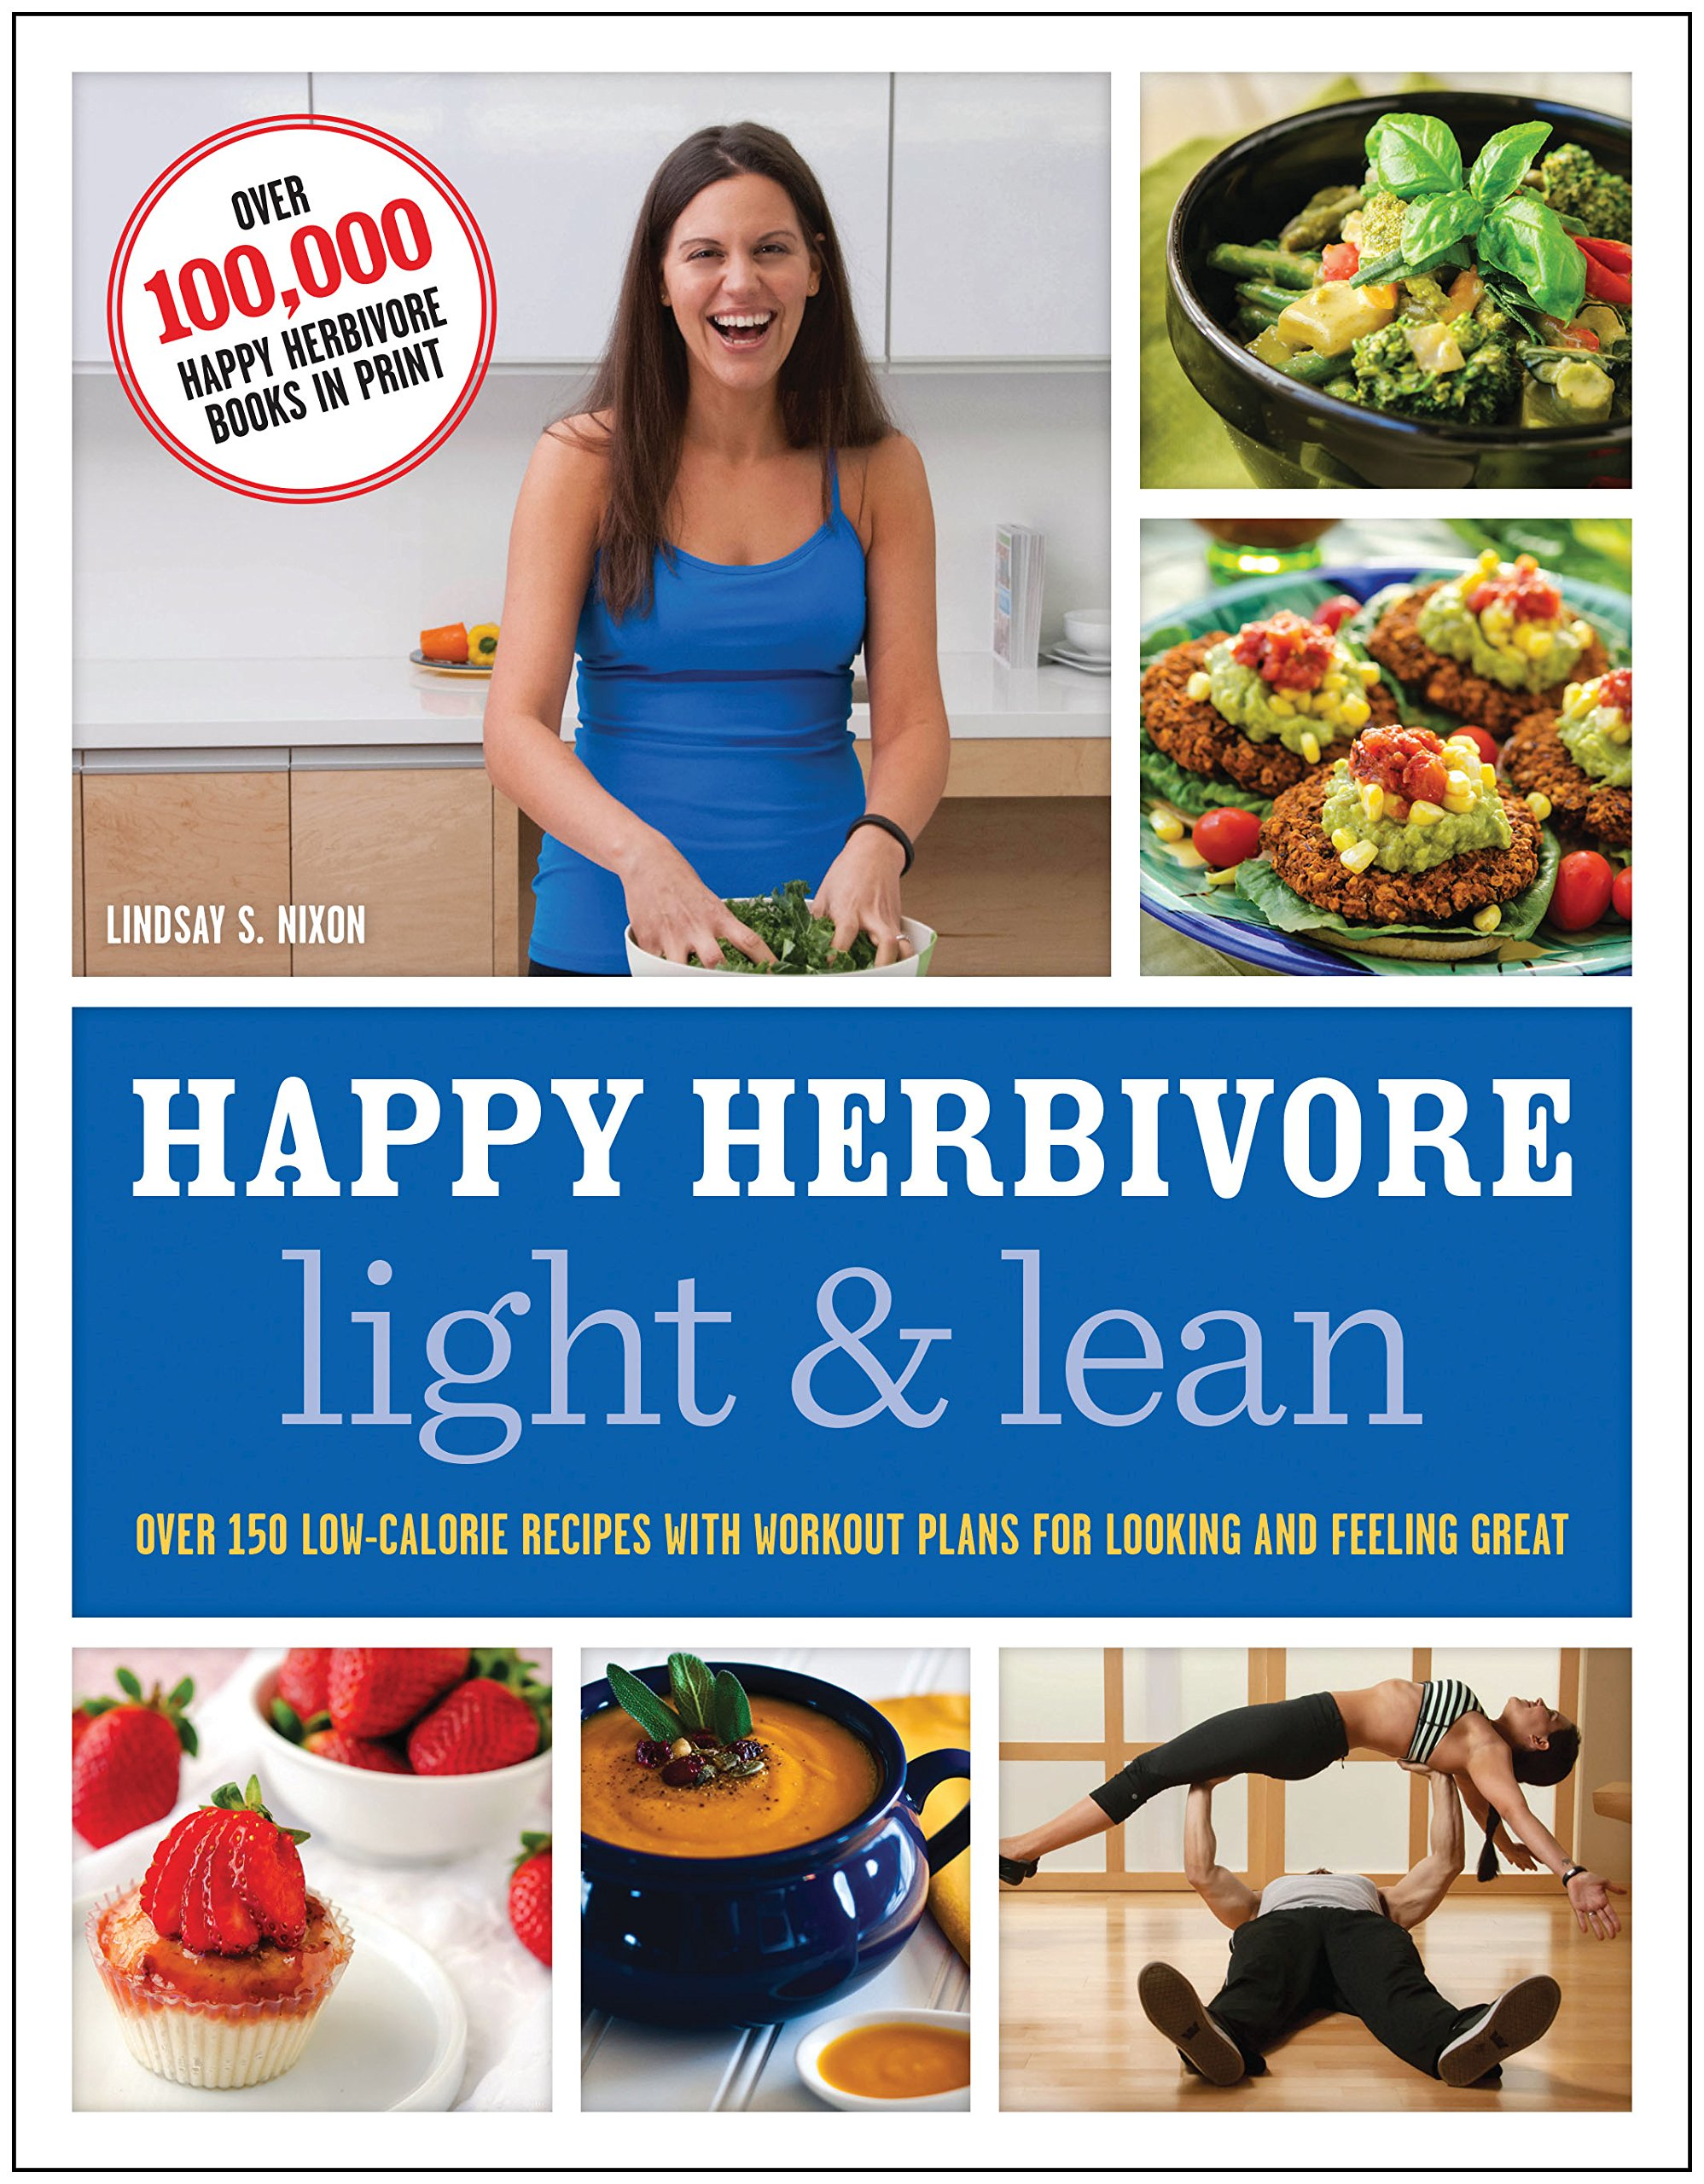 Download Happy Herbivore Light & Lean: Over 150 Low-Calorie Recipes with Workout Plans for Looking and Feeling Great ebook